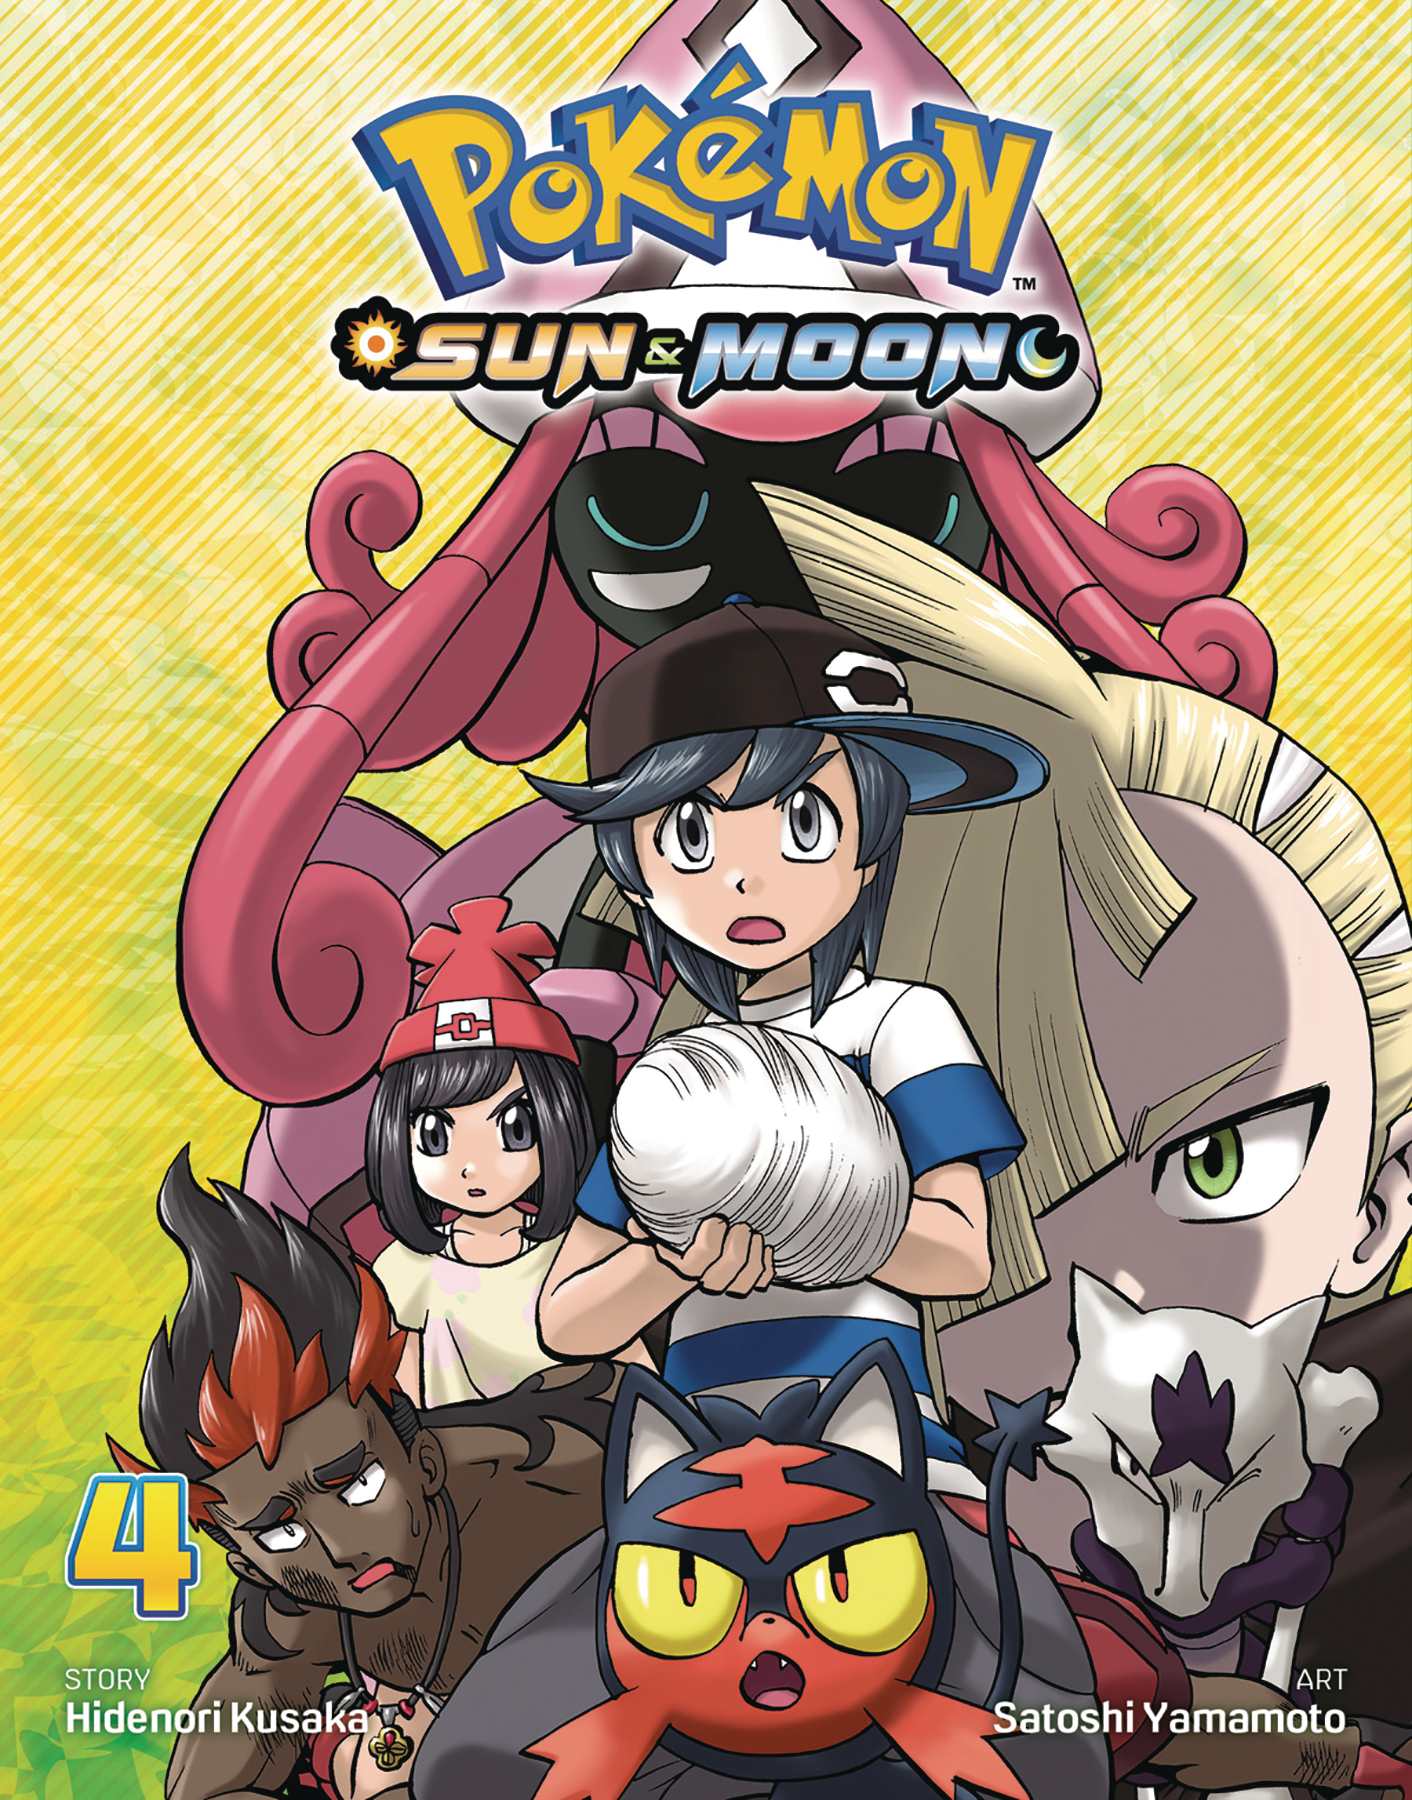 POKEMON SUN & MOON GN VOL 04